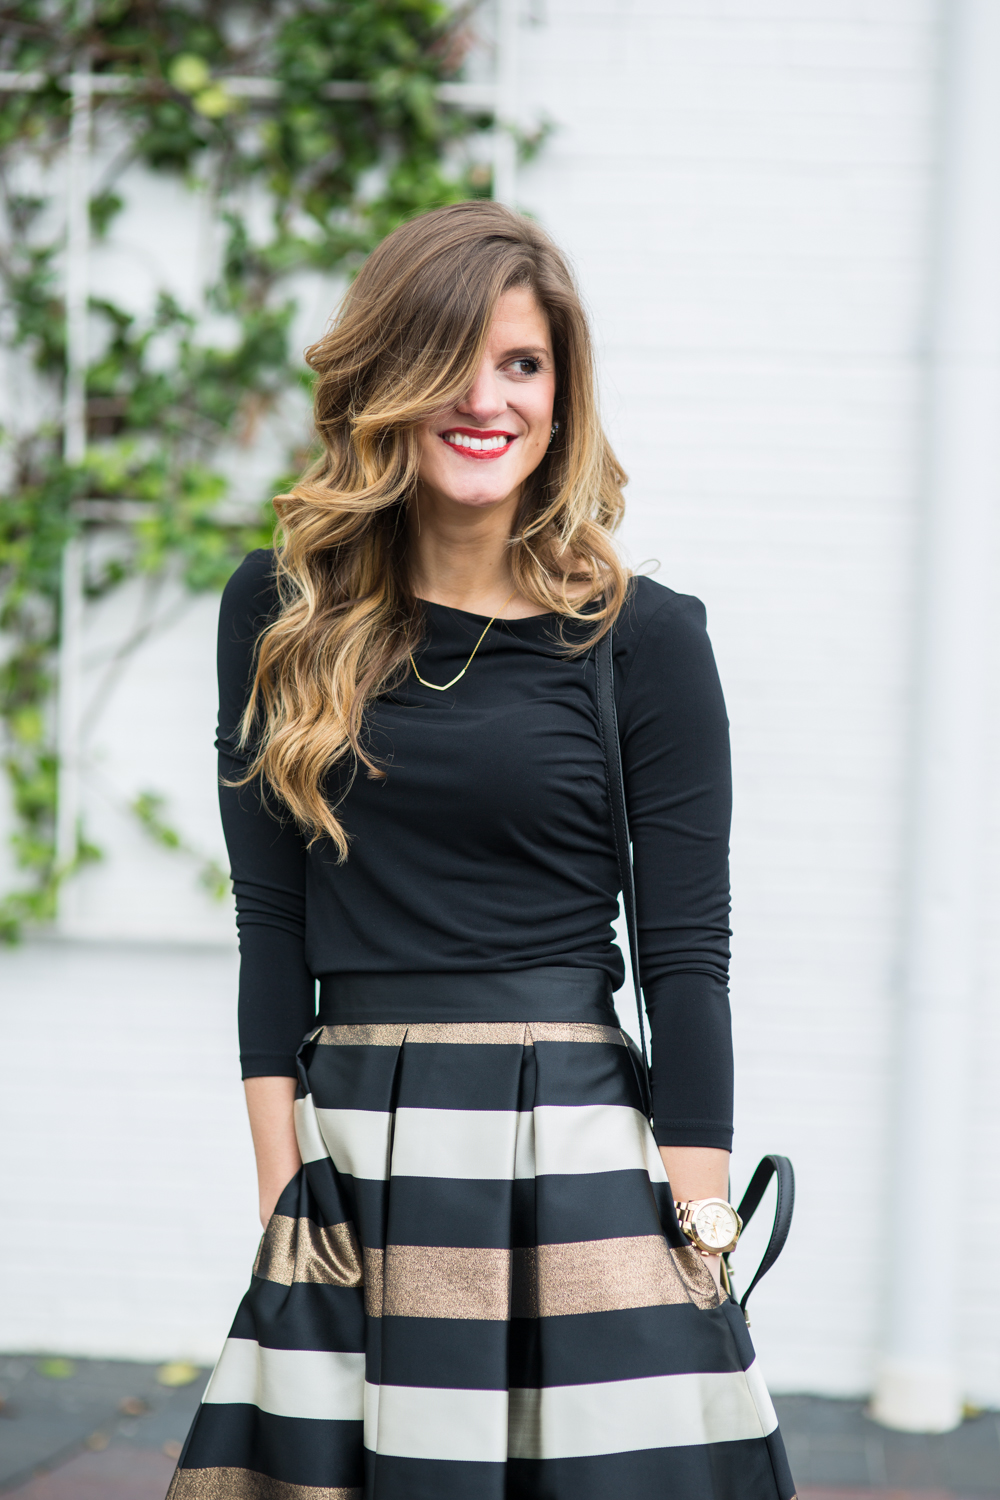 what to wear to holiday office party, holiday office party outfit idea, what to wear to company christmas party, midi skirt outfit, eliza j midi skirt with black turtleneck, kate spade bag, statement necklace